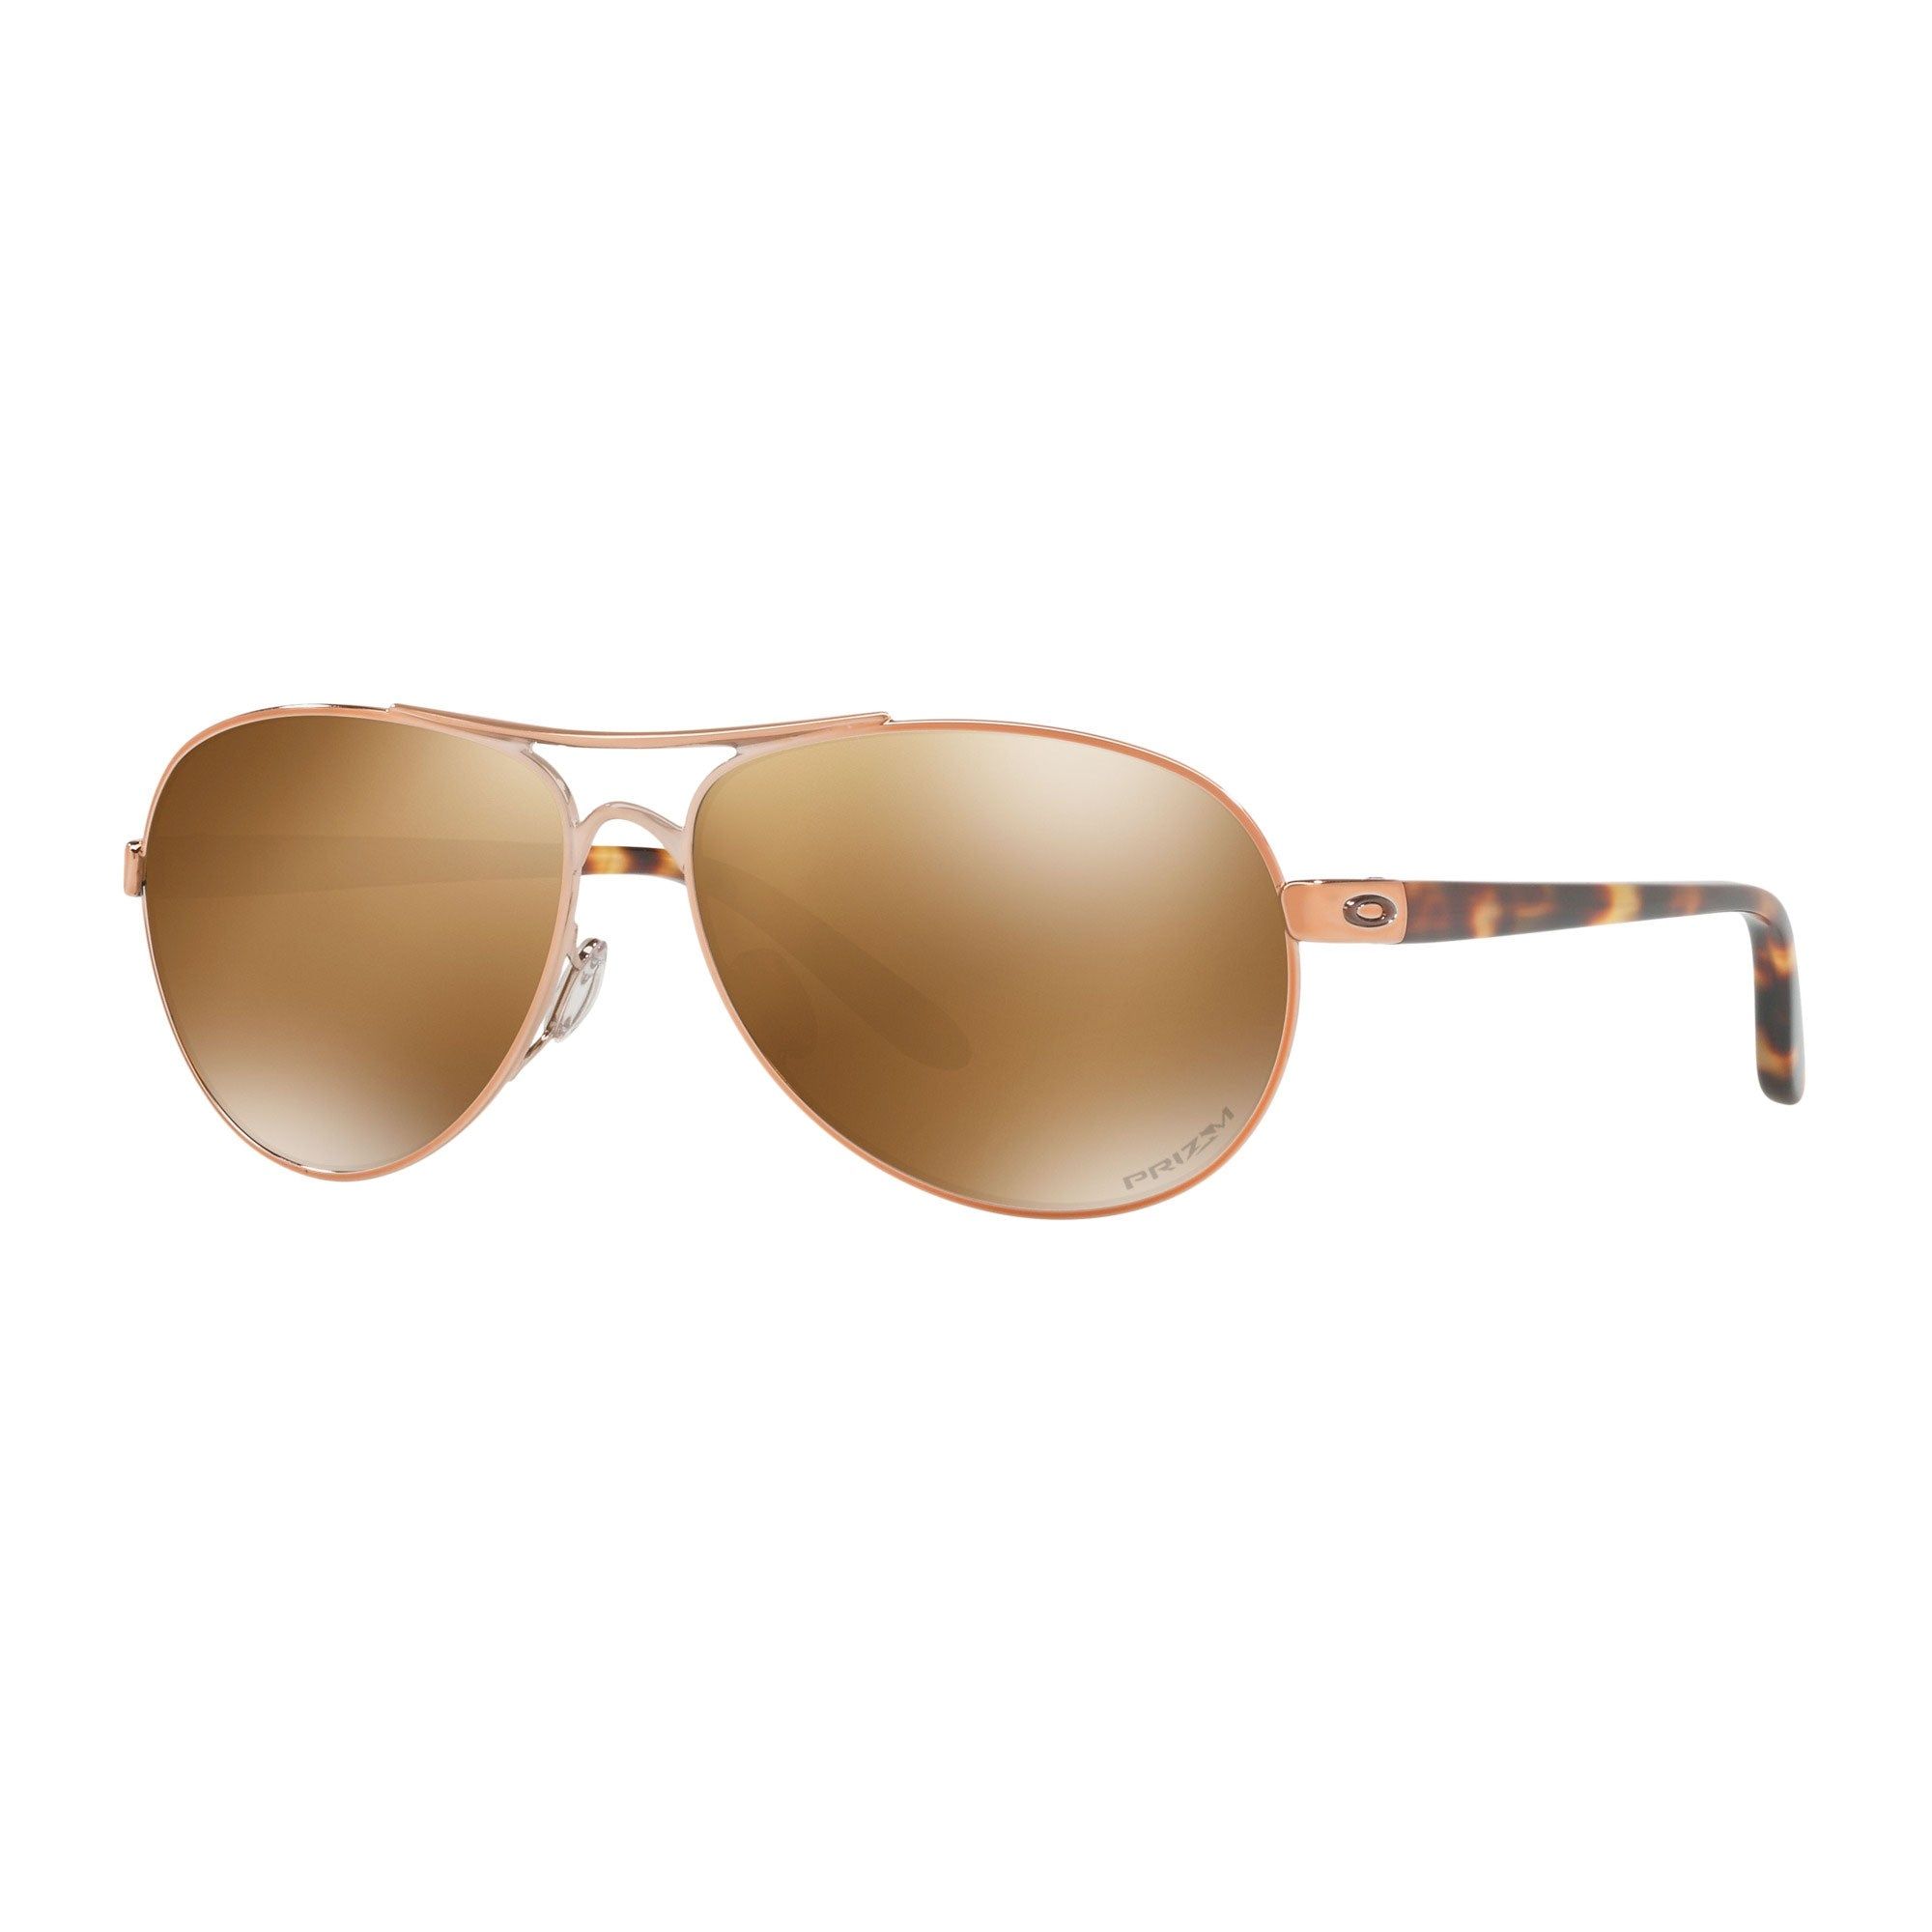 Oakley Feedback Women's Sunglasses - Polarized - Rose Gold/Prizm Tungsten